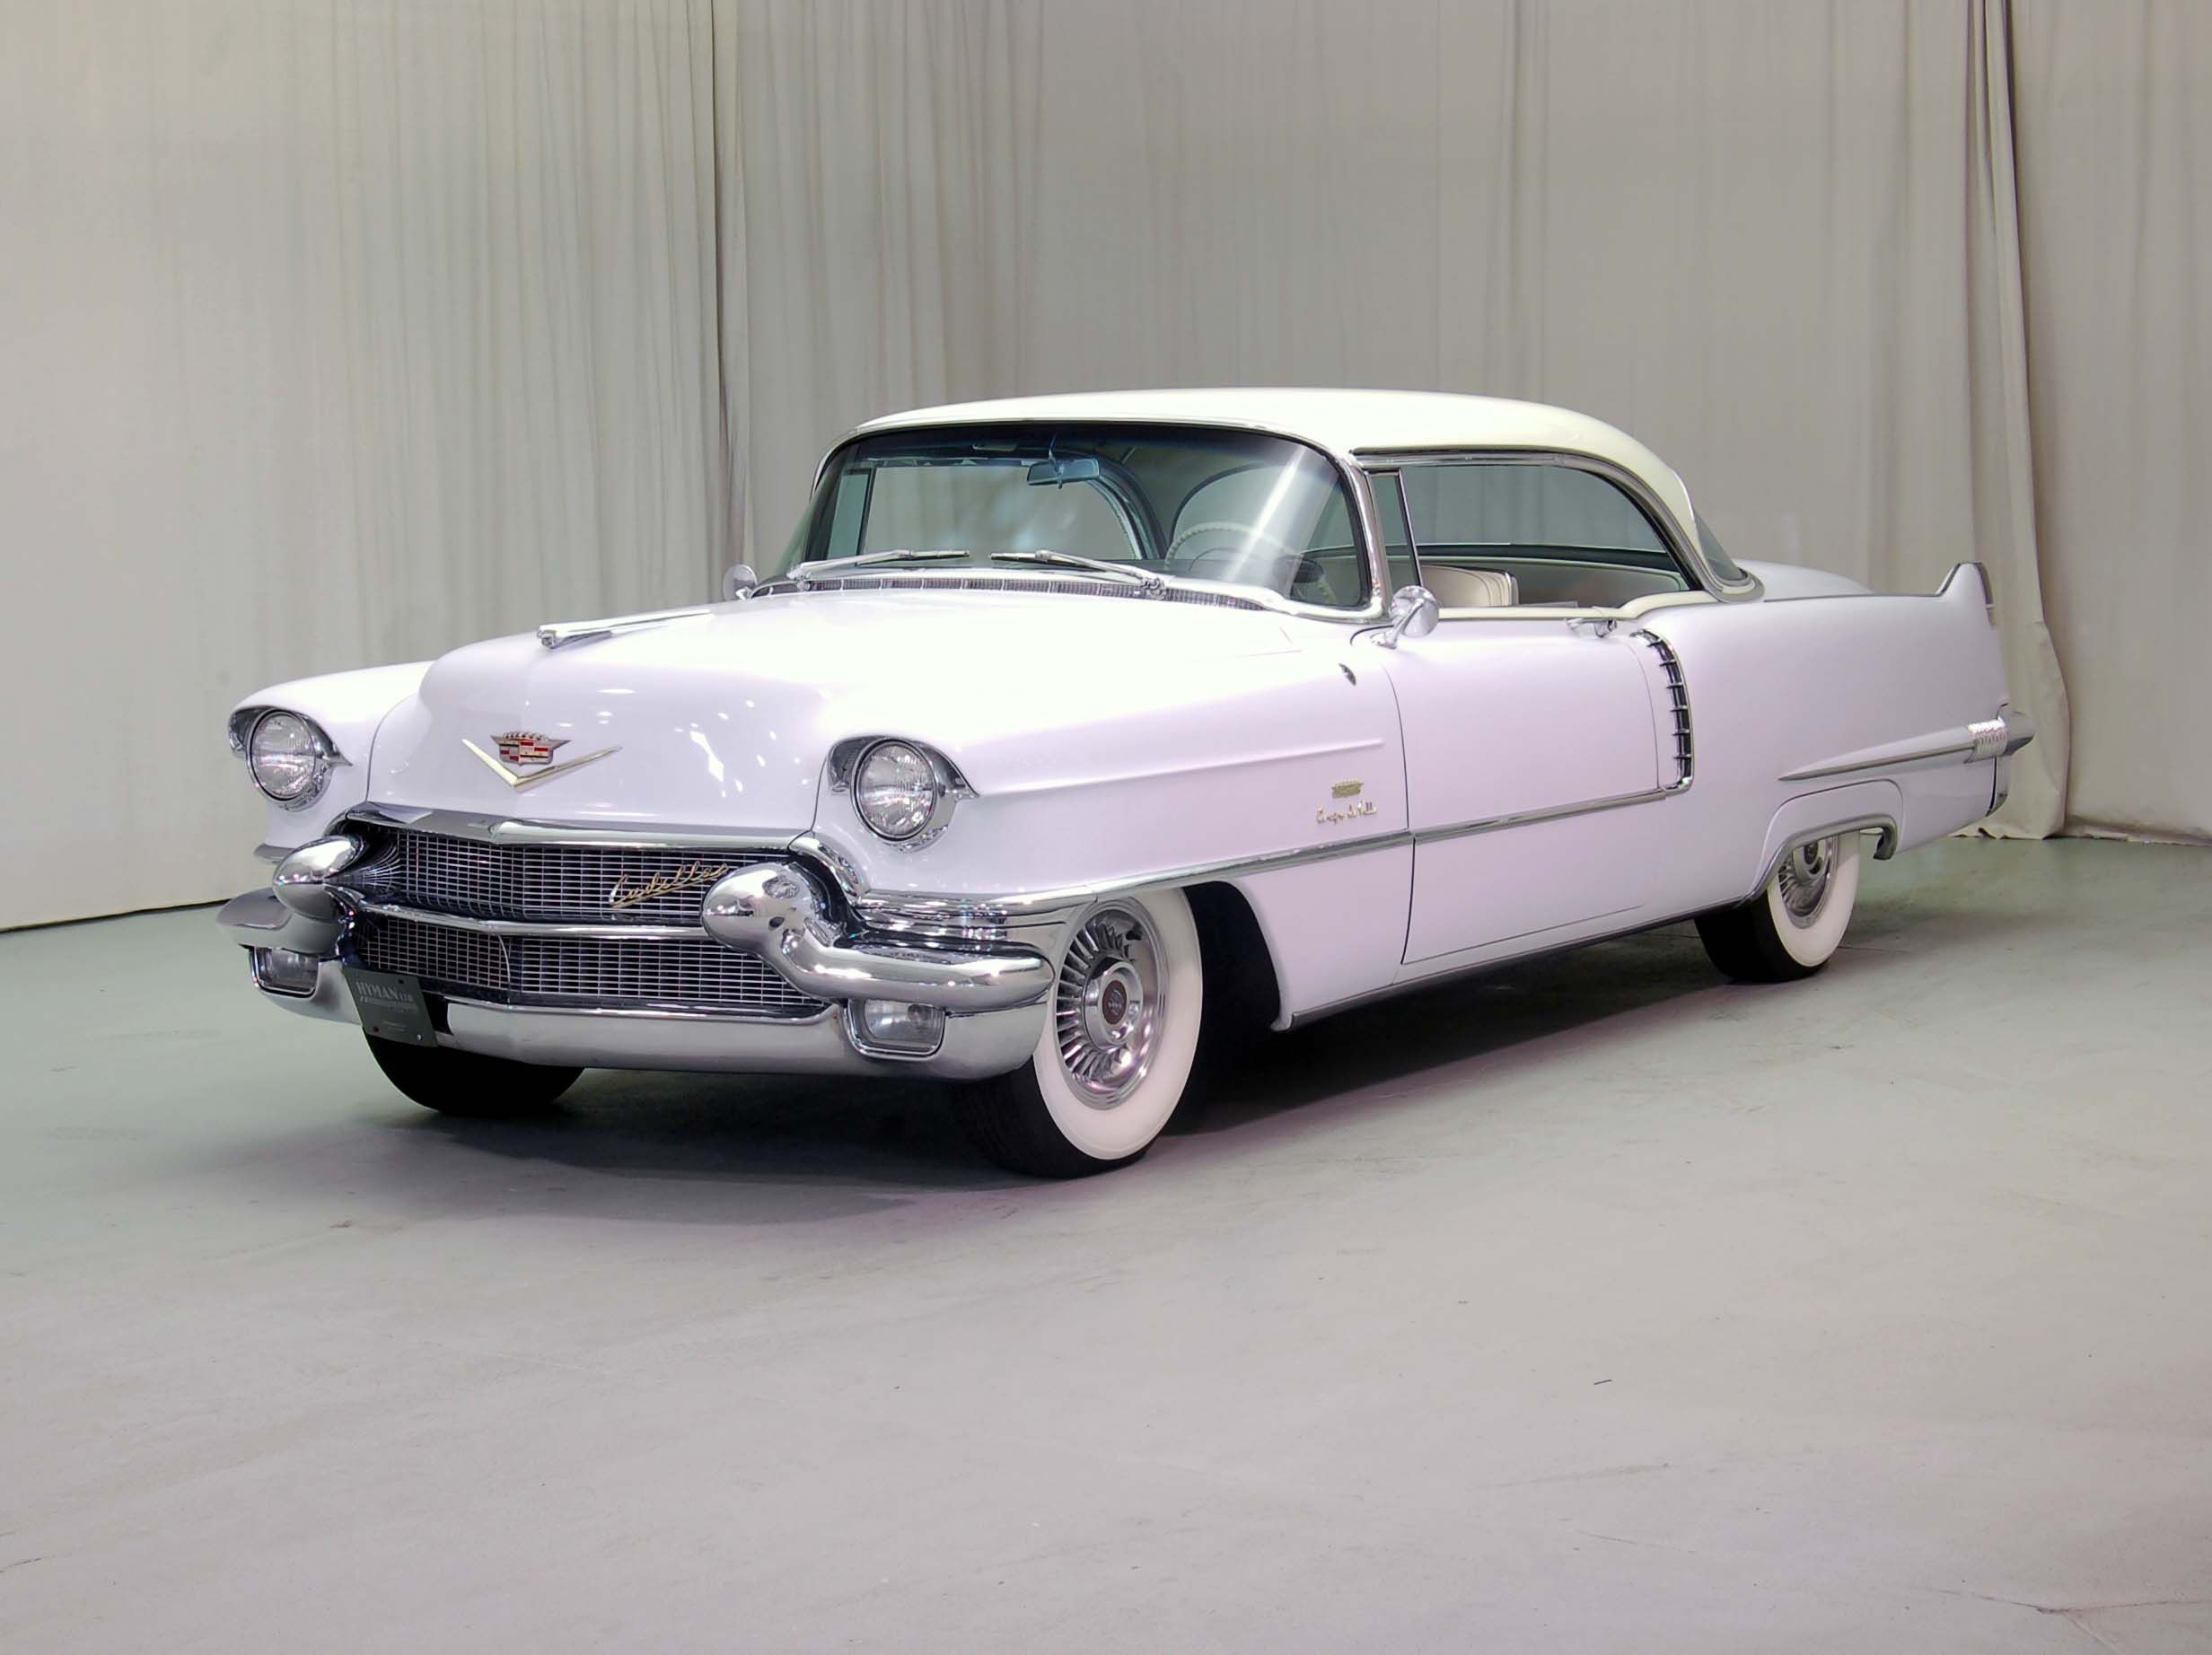 Cadillac Series 62 wallpapers | Auto Hd Wallpapers | Pinterest ...